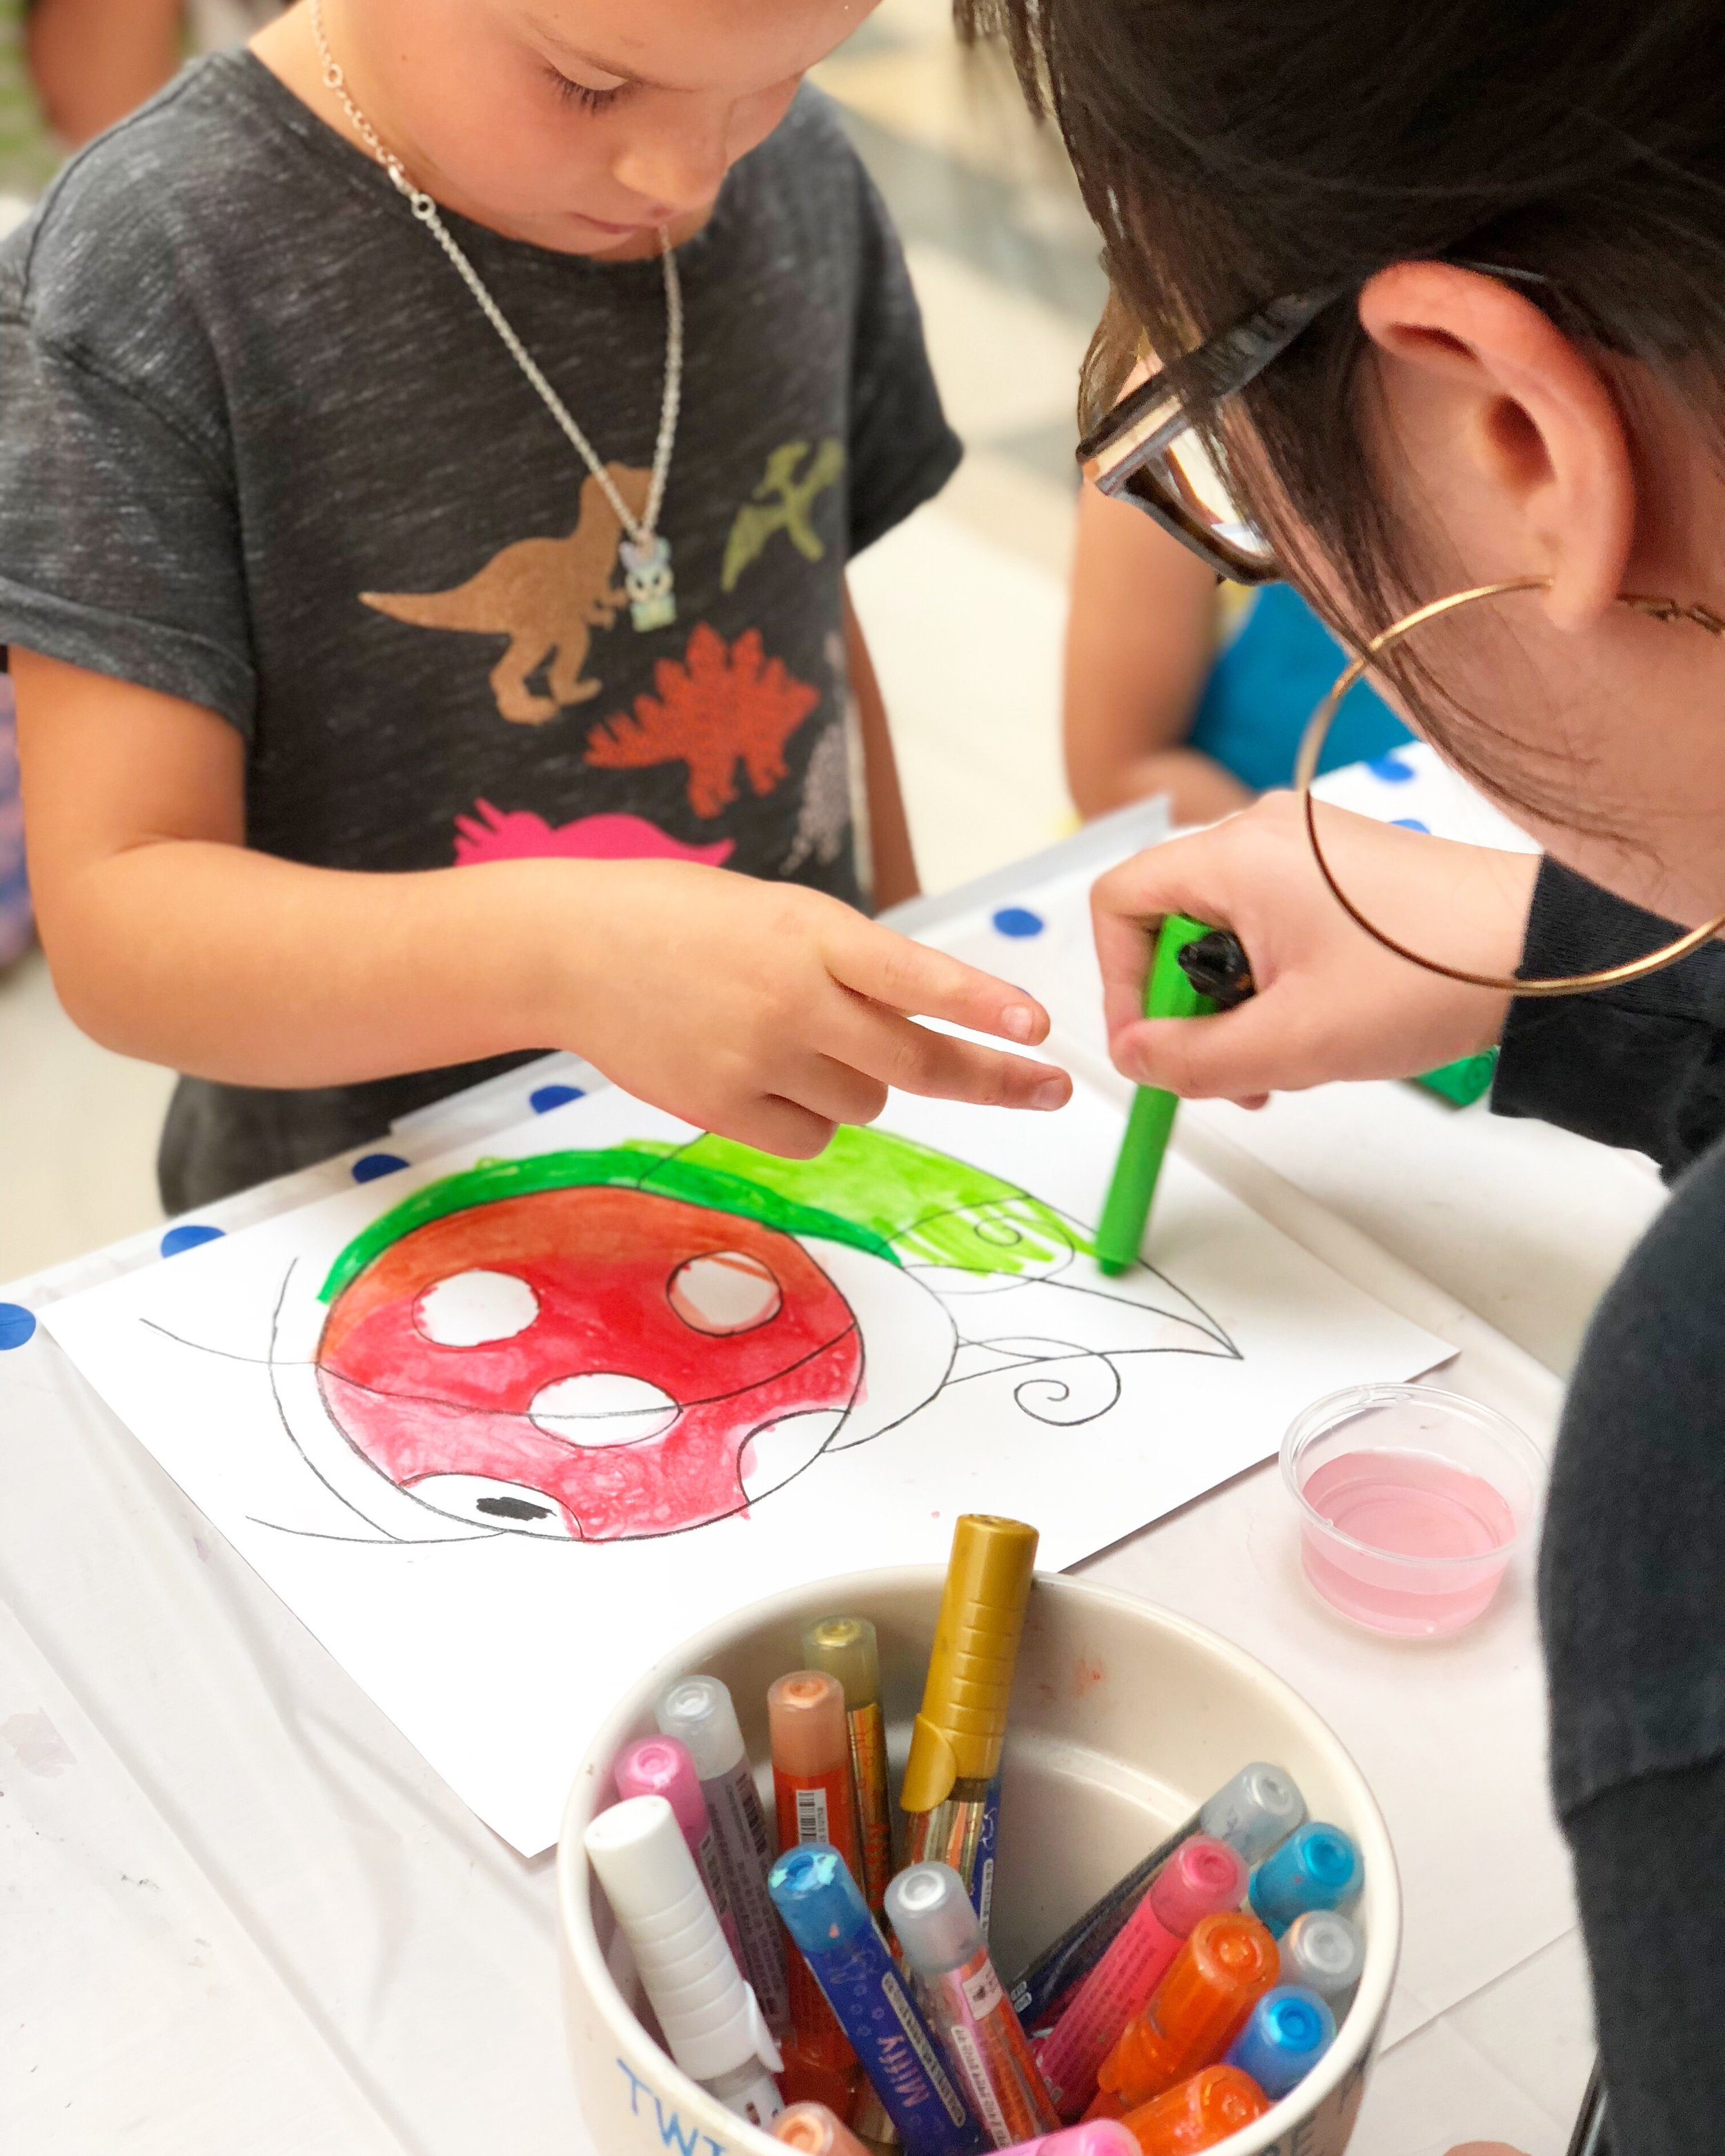 image of young girl painting a ladybug